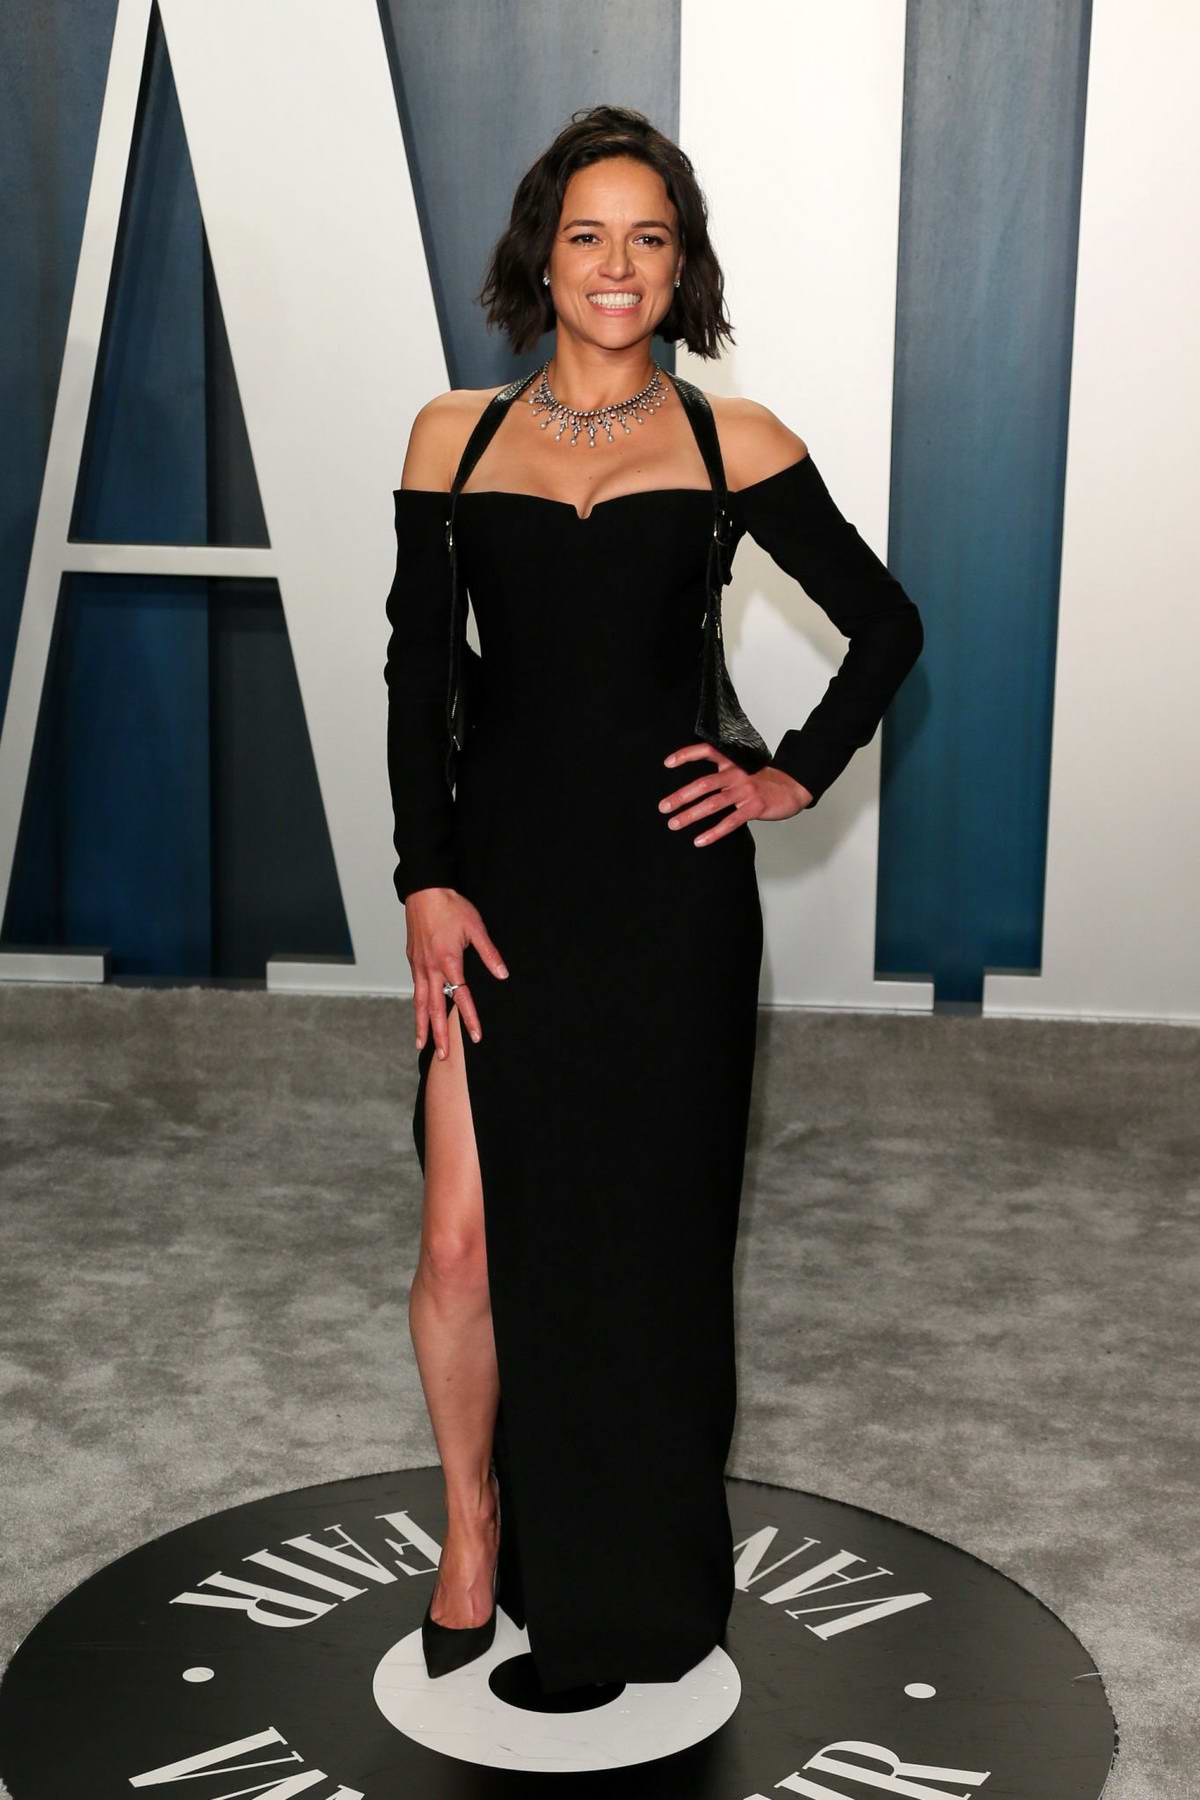 Michelle Rodriguez attends the 2020 Vanity Fair Oscar Party at Wallis Annenberg Center for the Performing Arts in Los Angeles